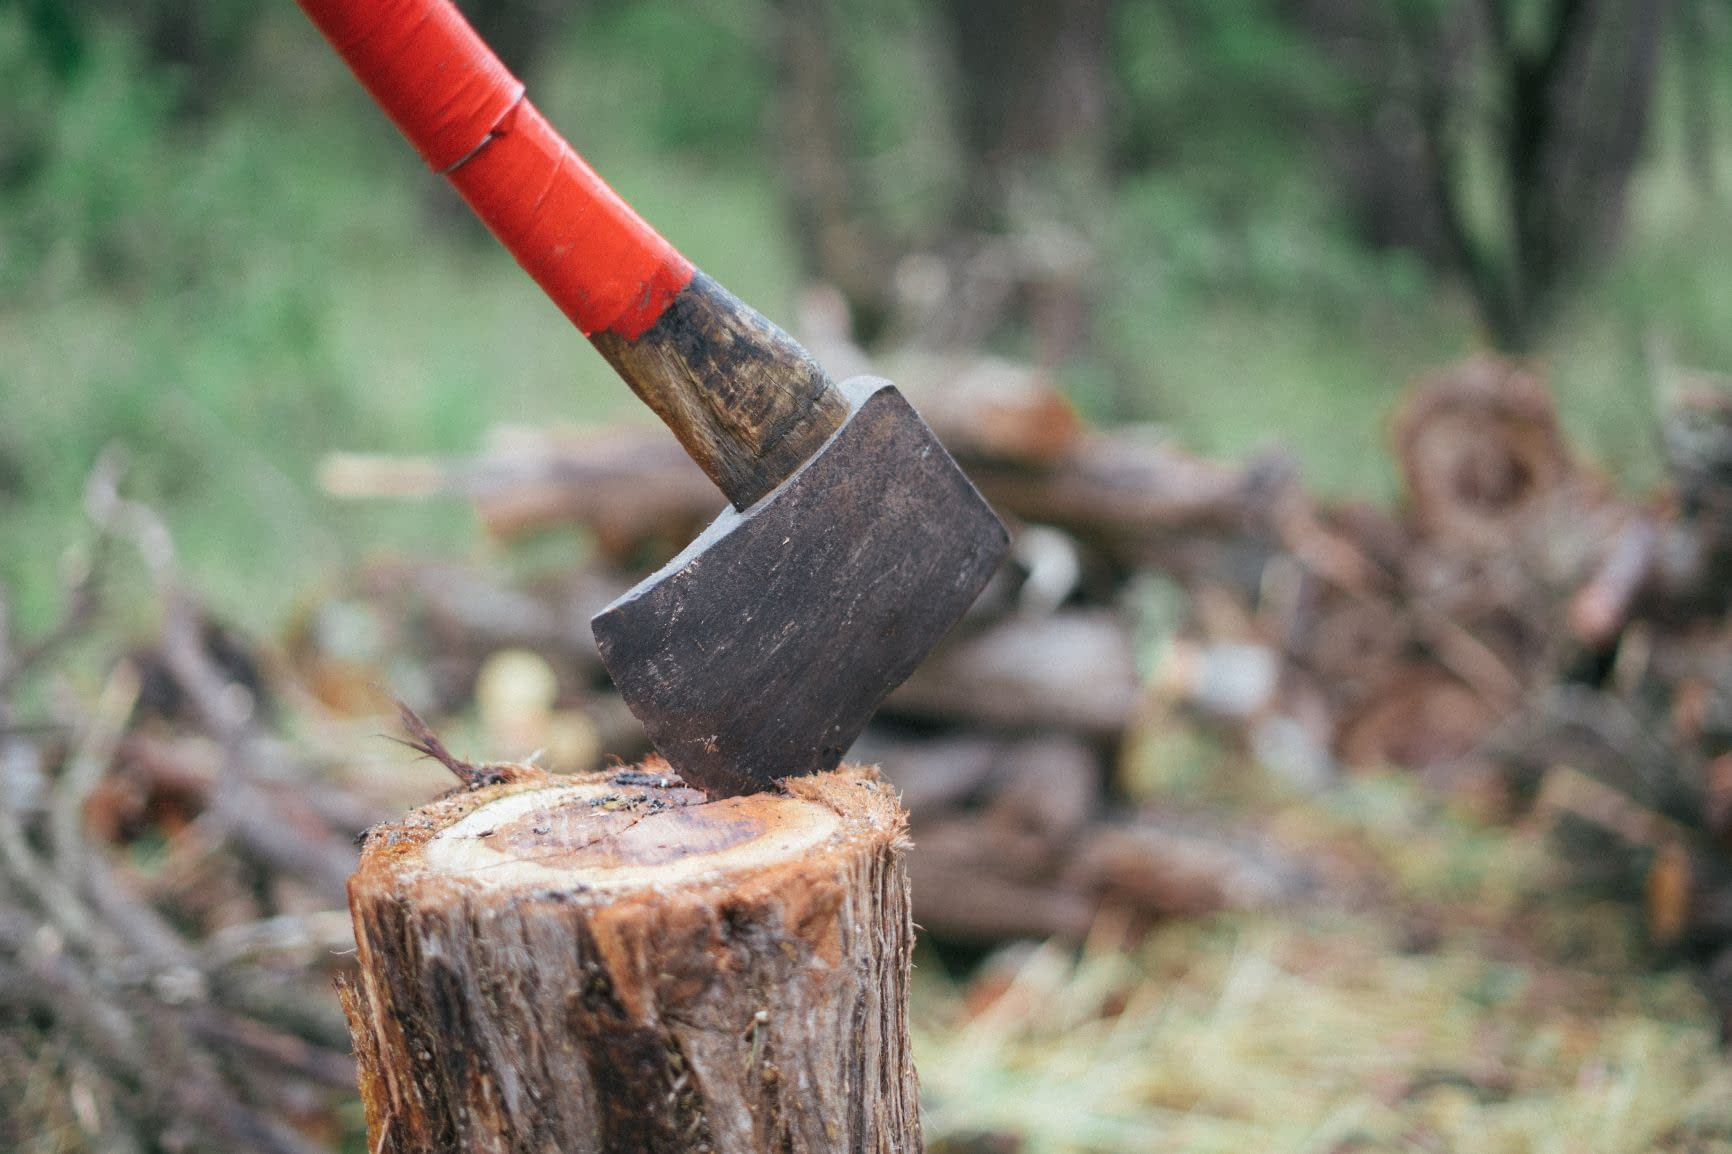 How to cut wood without saw